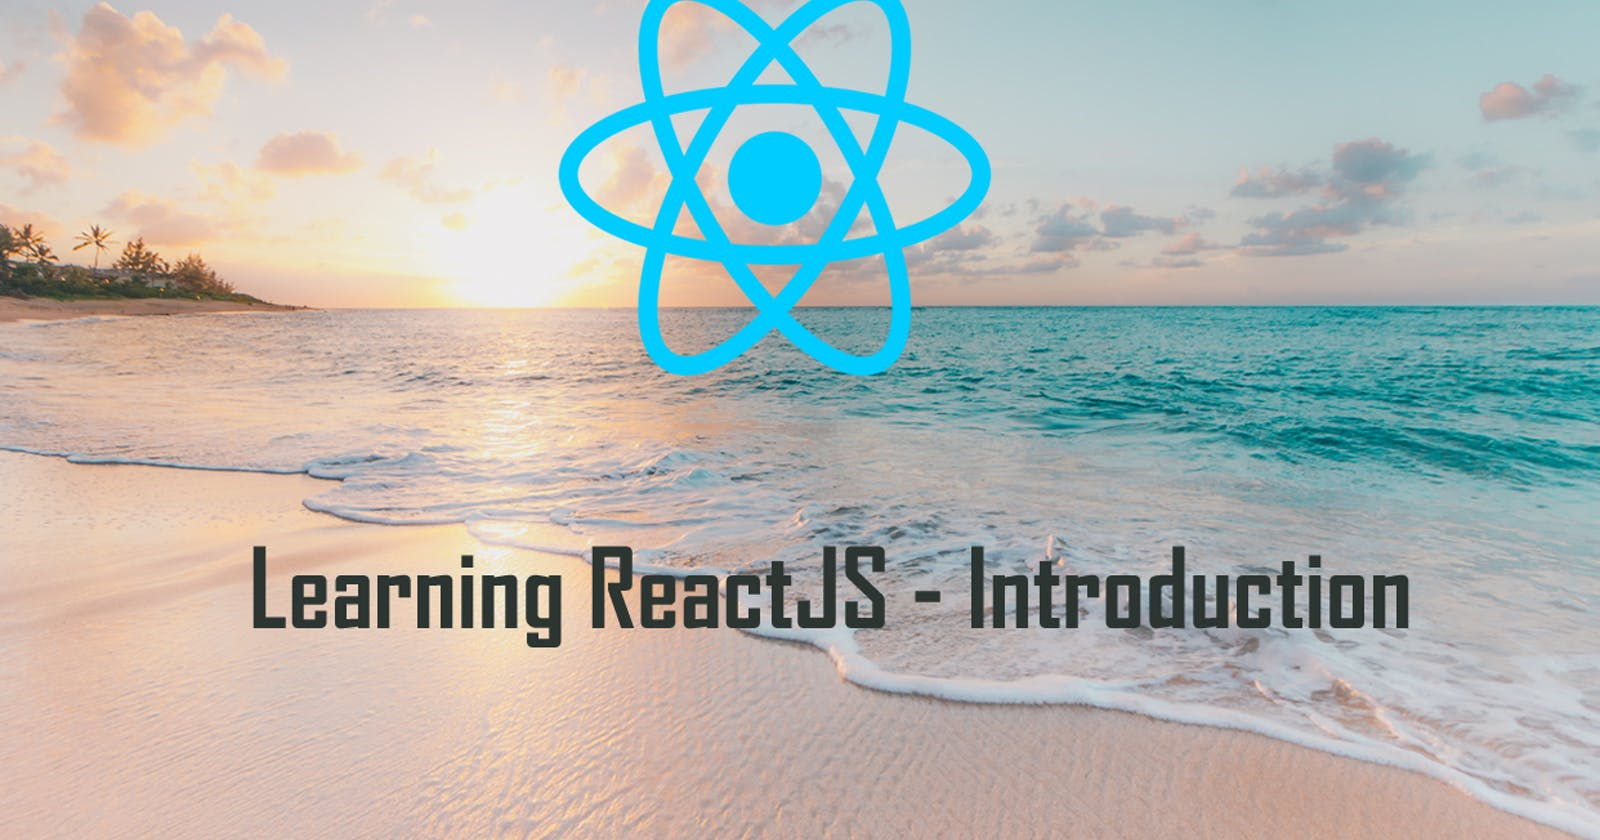 Learning ReactJS - Introduction